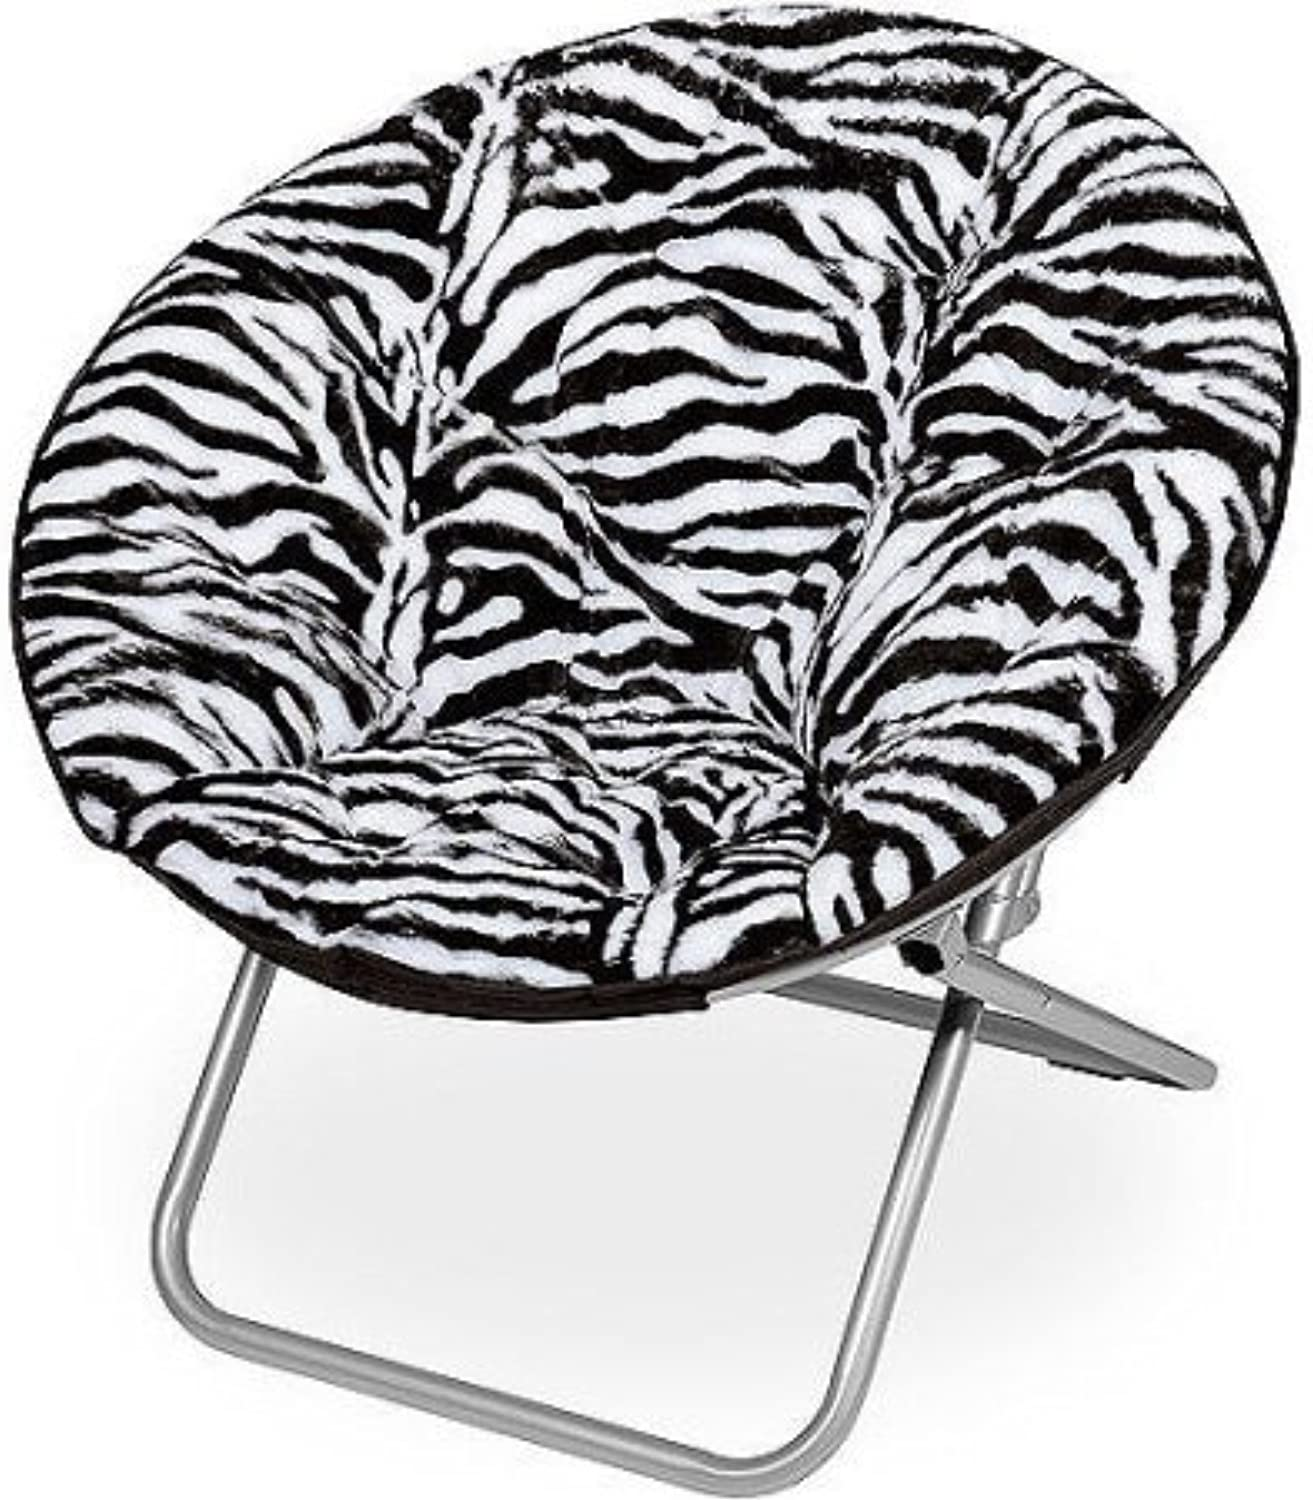 Mainstays Faux-Fur Saucer Chair with Cool faux-fur fabric, soft and wide seat, Perfect for lounging, dorms or any room in Multiple colors (Zebra)